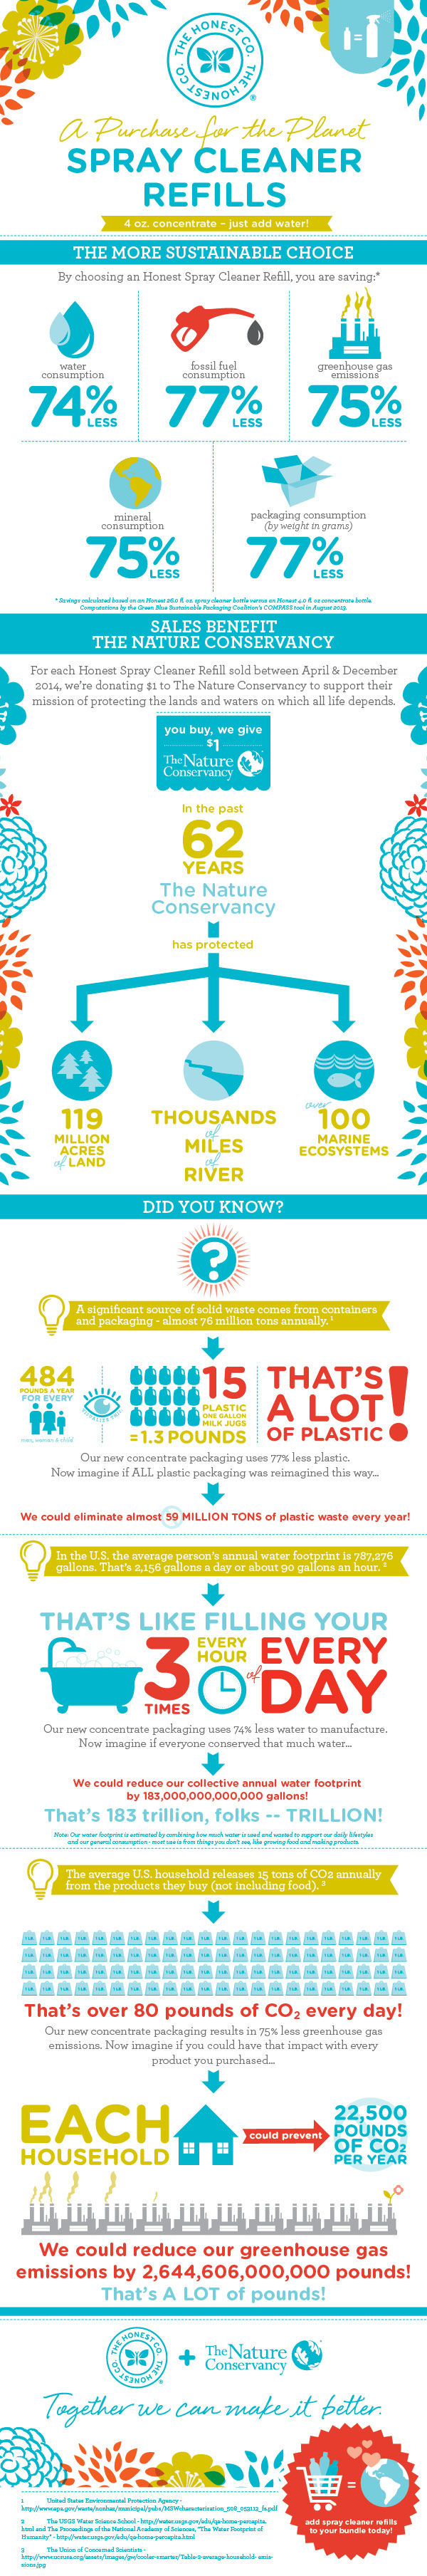 The Honest Company Concentrates Infographic